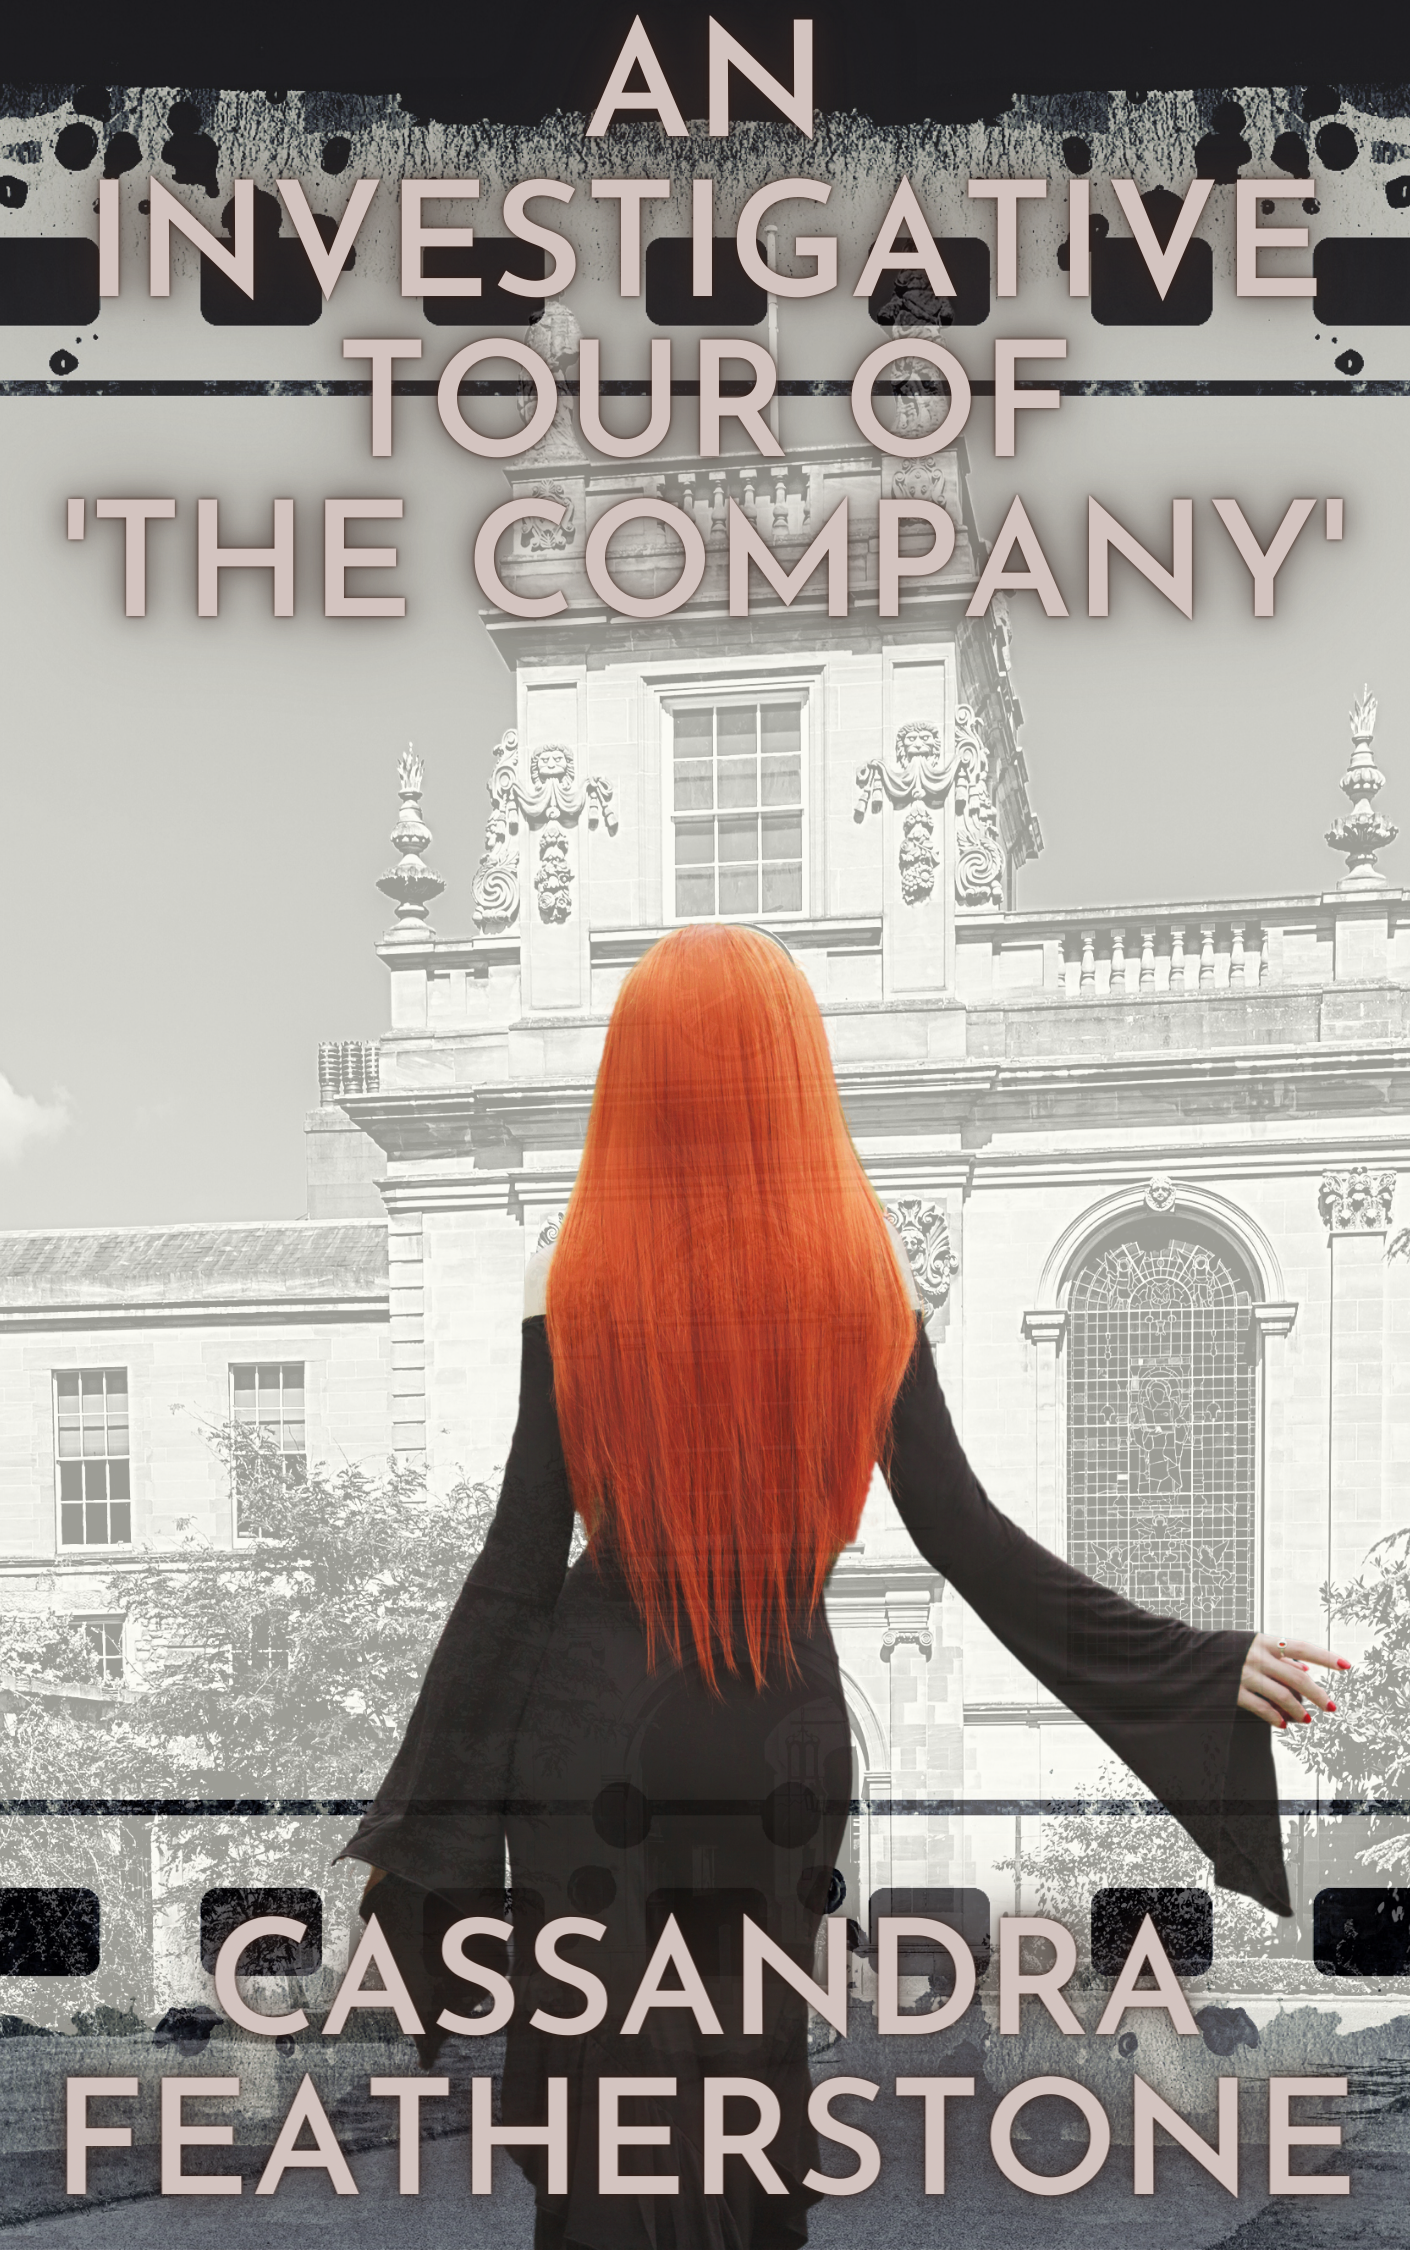 An Investigative tour of 'the company'